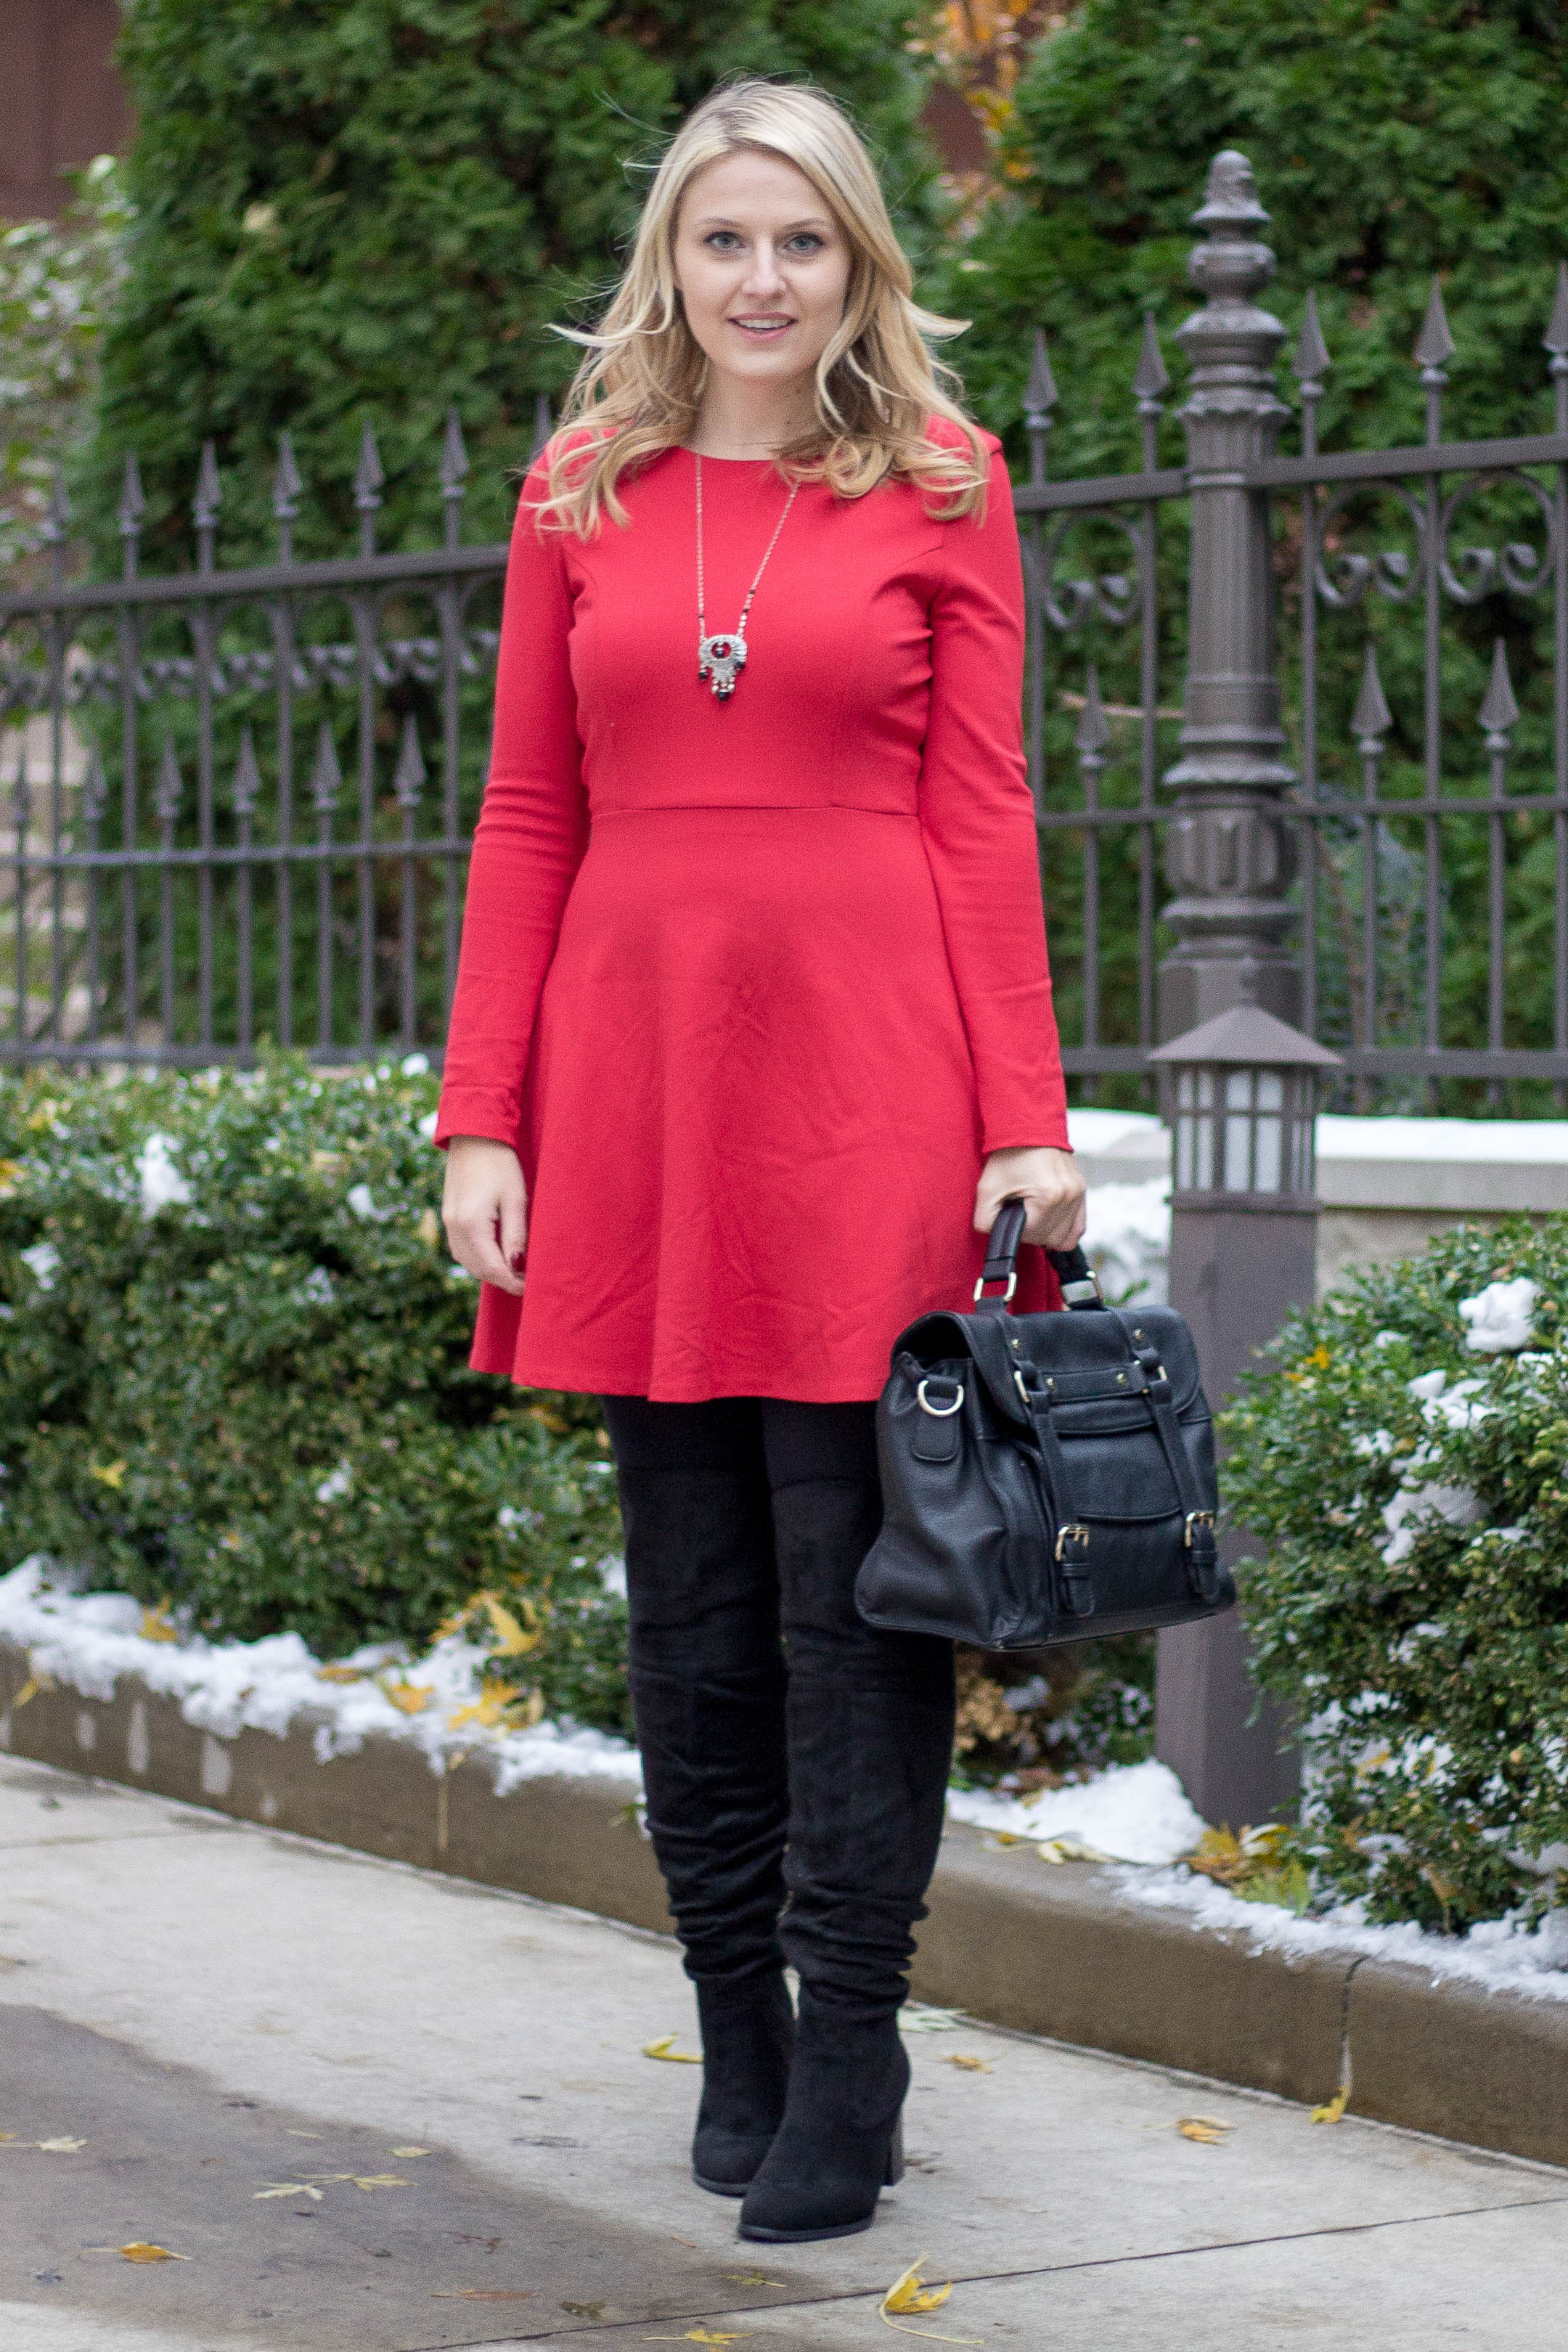 A easy winter work outfit wearing a long sleeve red dress